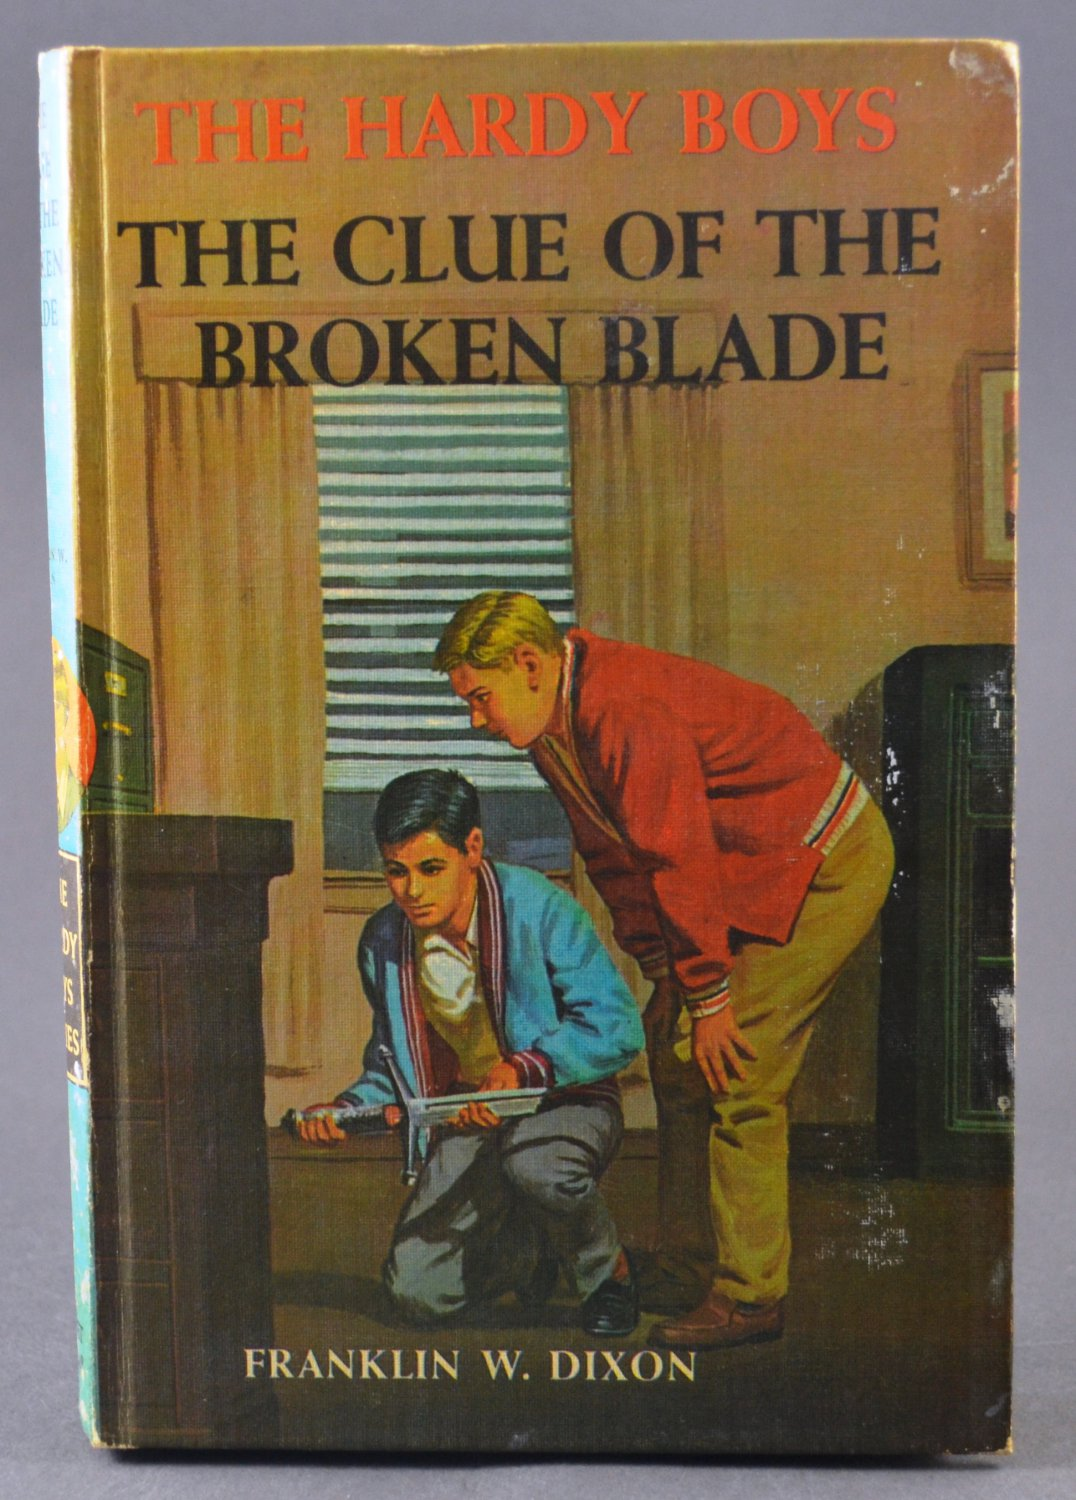 The Hardy Boys The Clue of the Broken Blade by Franklin W. Dixon PC